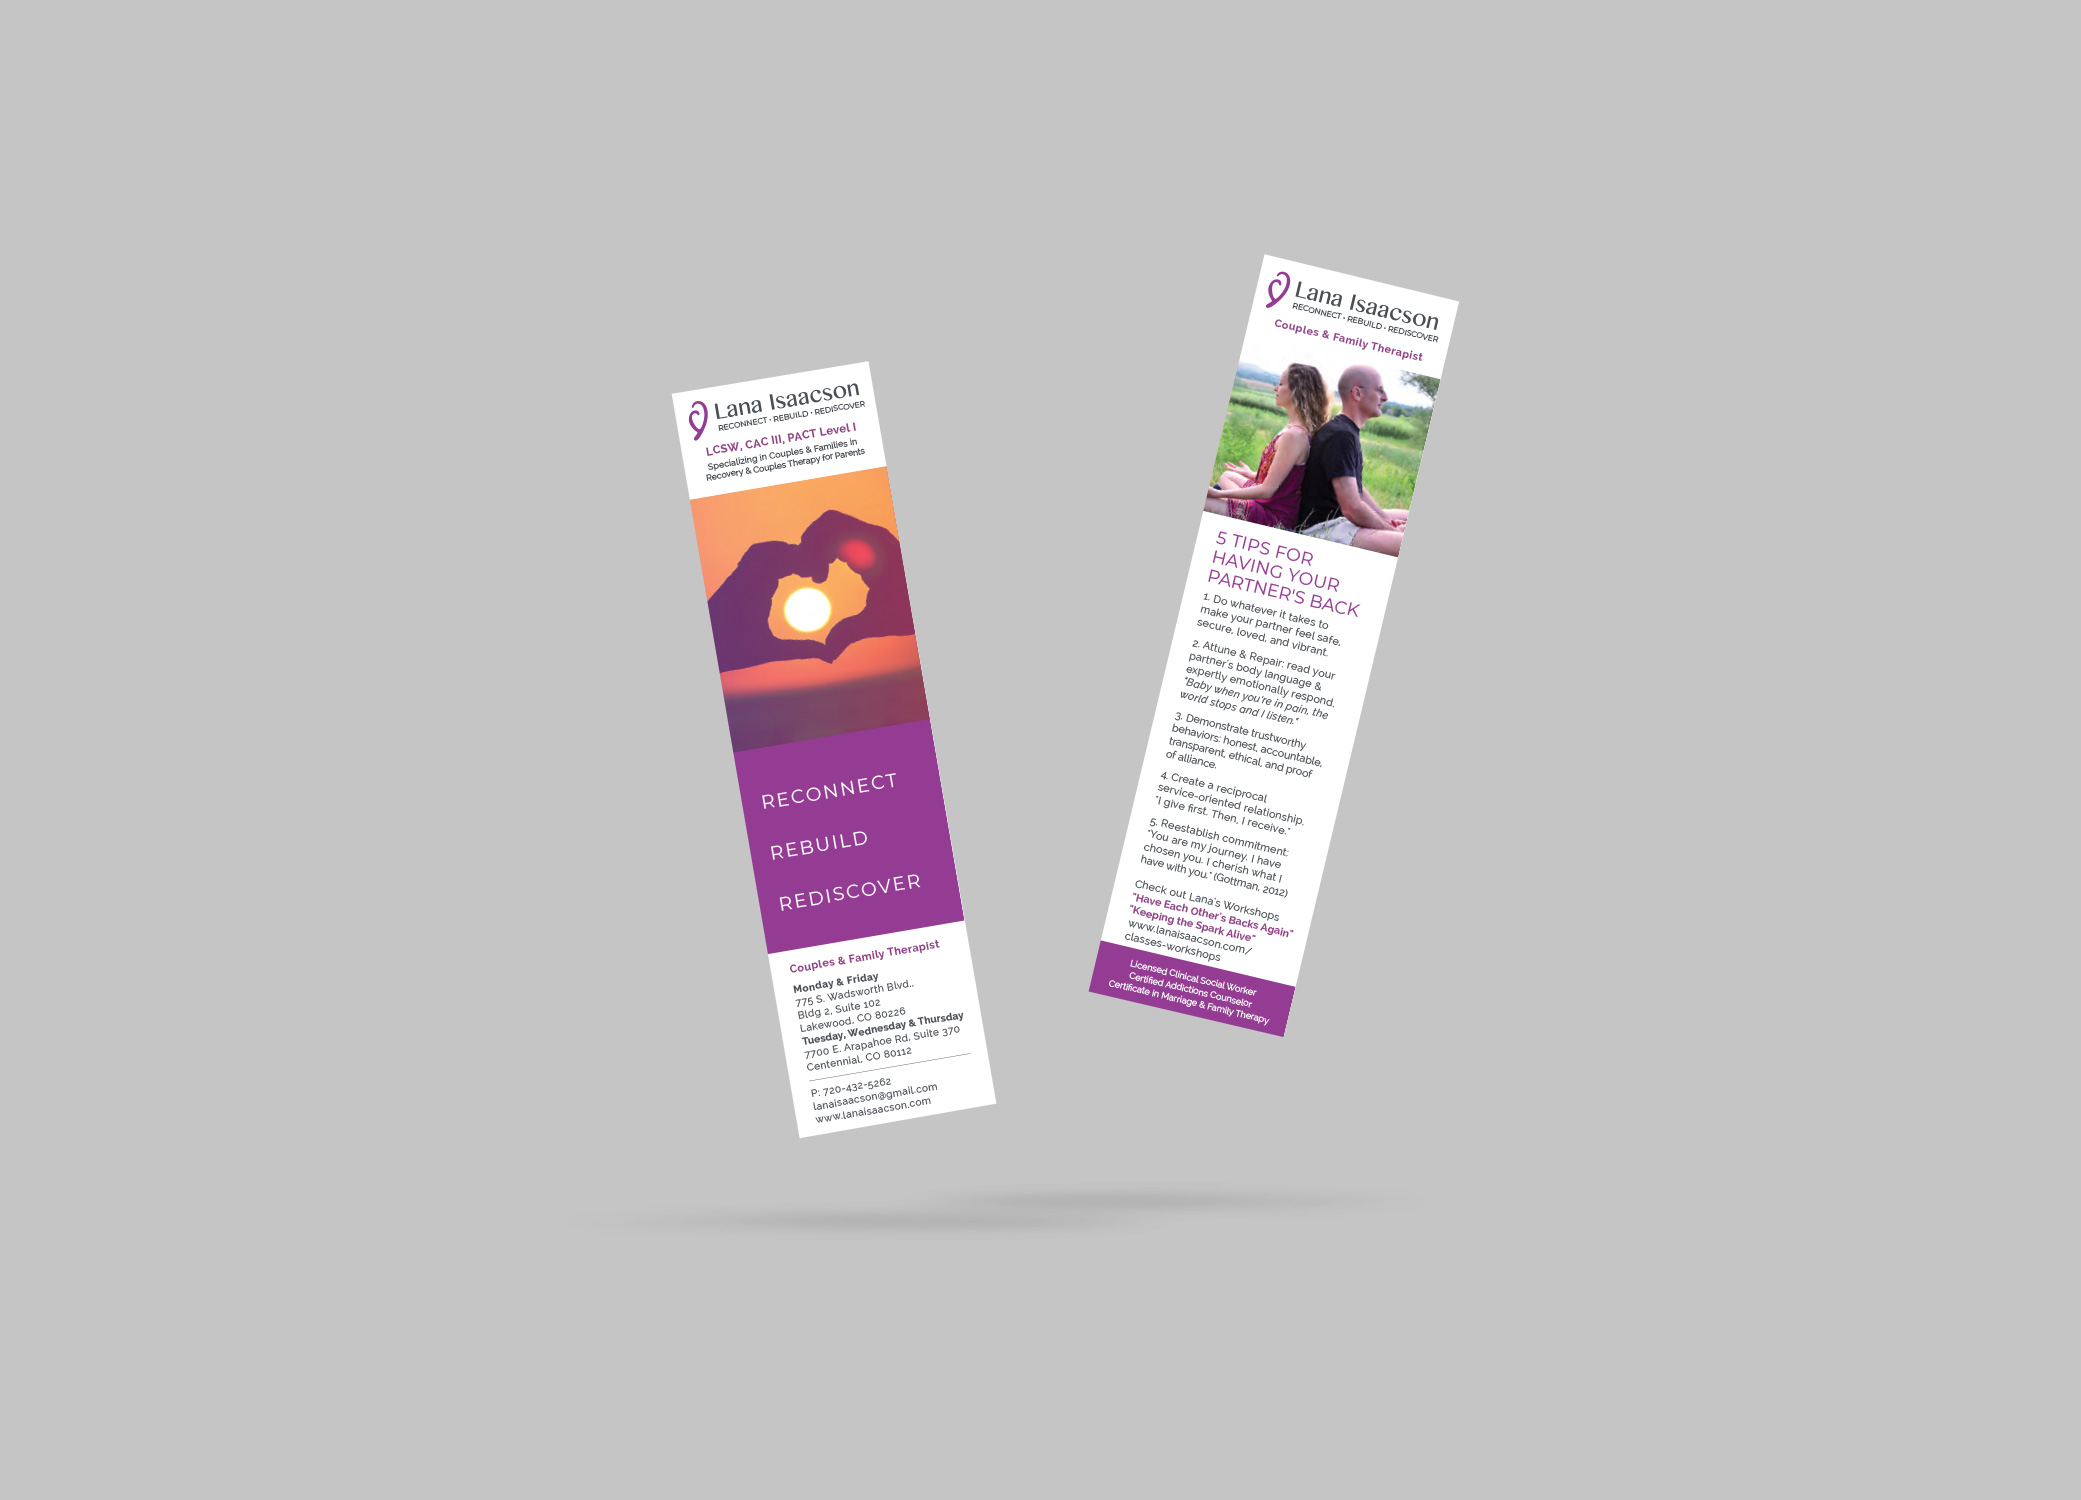 Lana Isaacson bookmarks with logo, brand images, tips, and location of service.